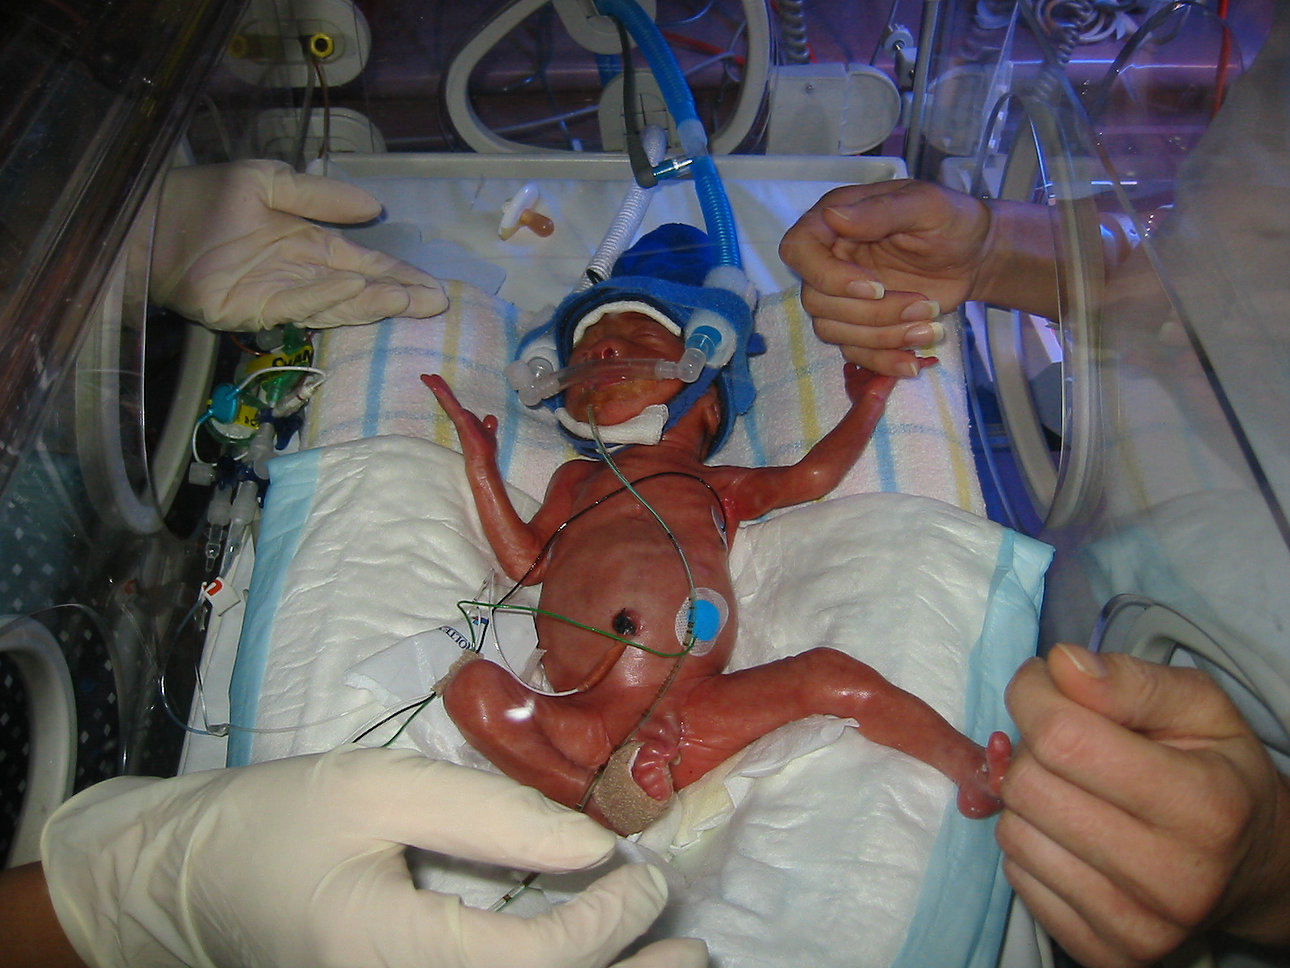 Clamping the umbilical cord later saves preterm babies' lives.